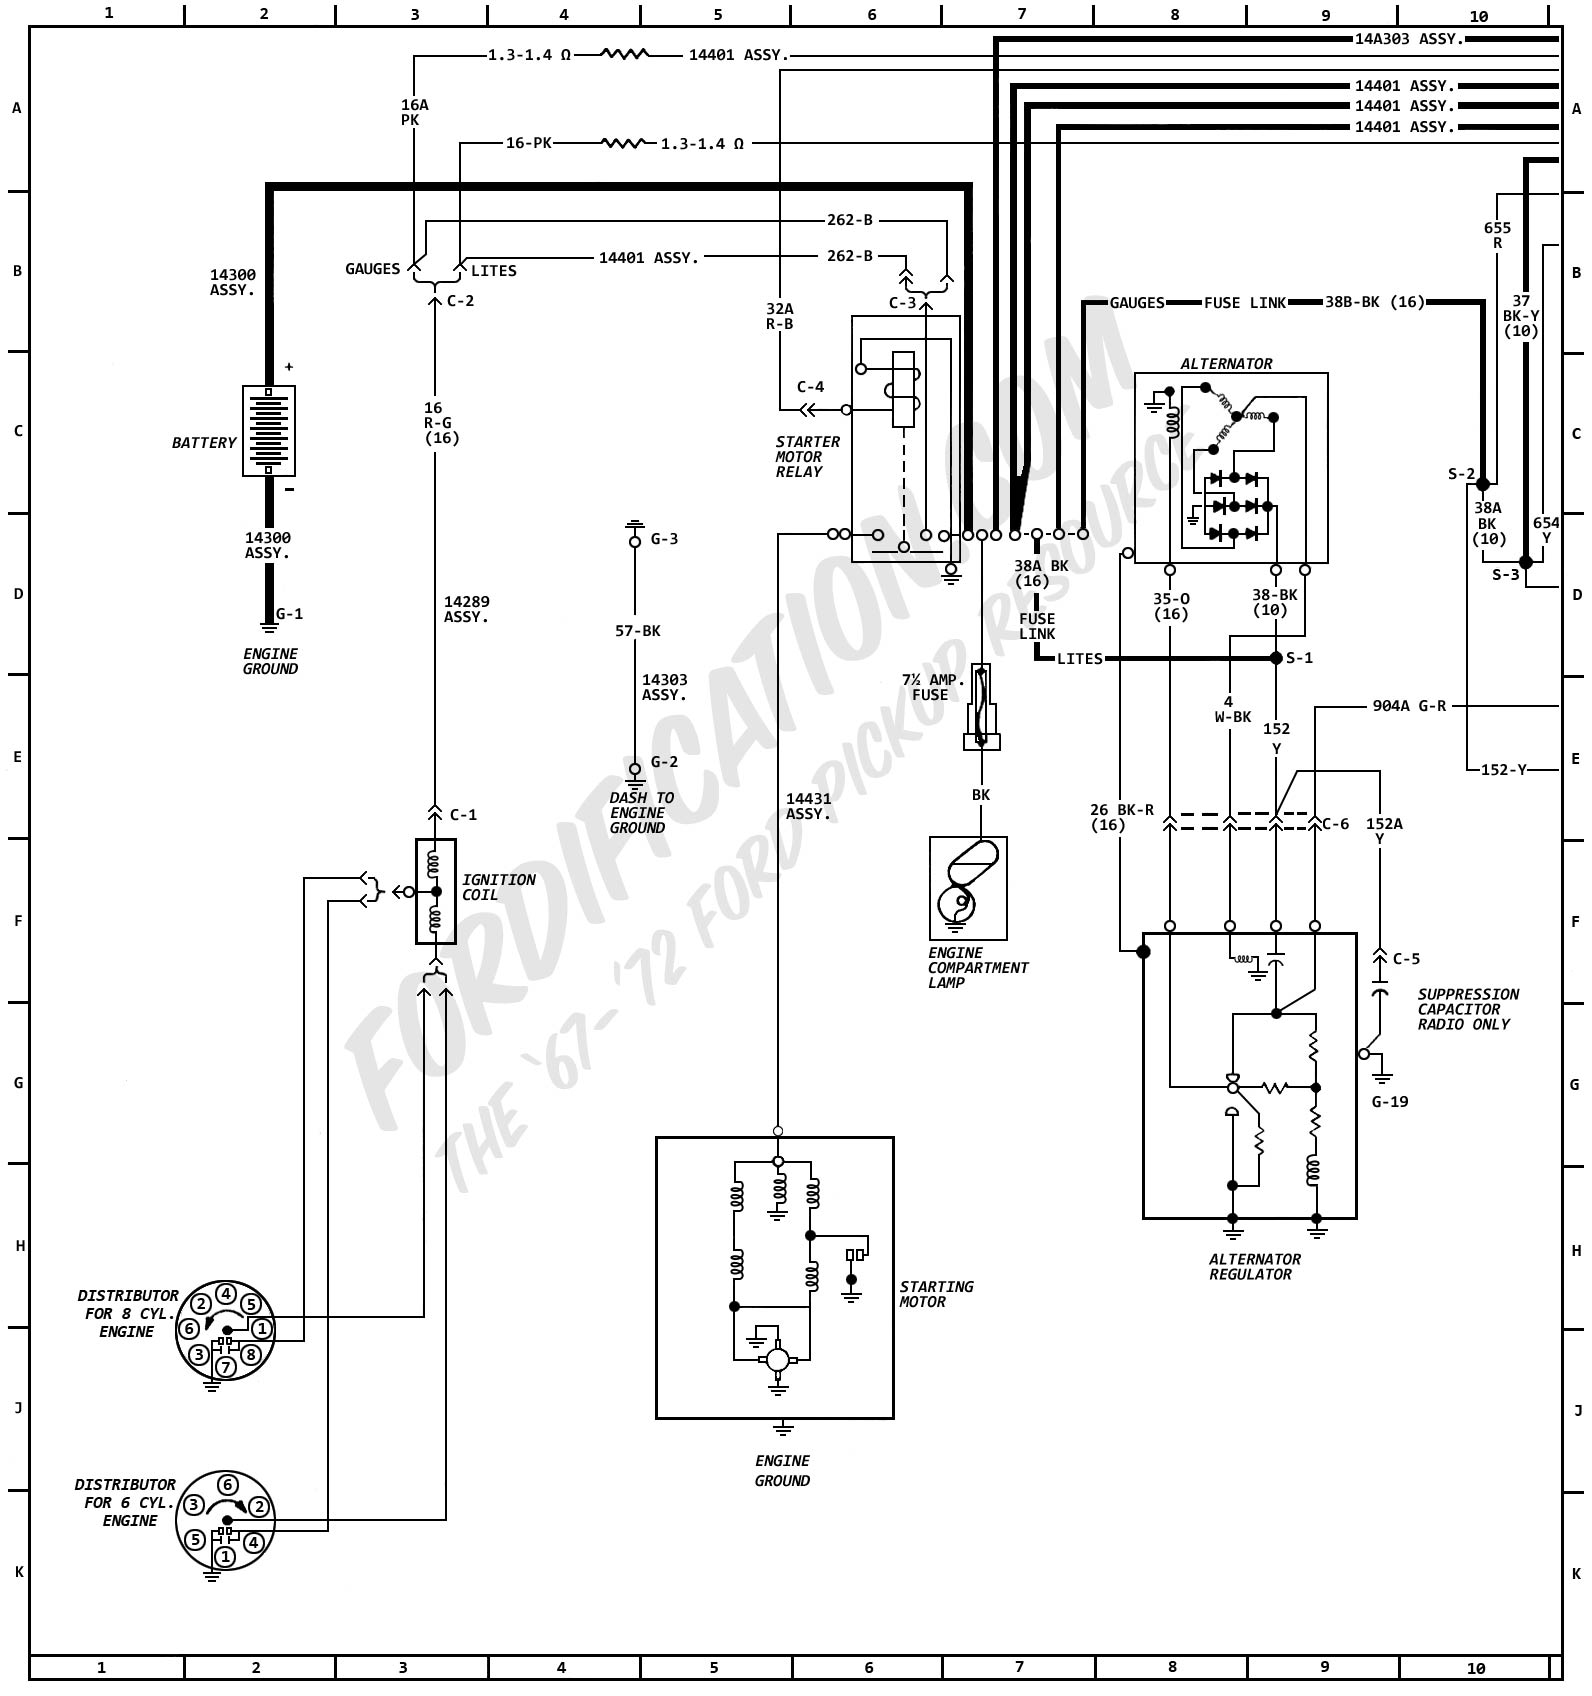 1972MasterWiring_01 1972 ford truck wiring diagrams fordification com 1971 ford f250 wiring diagram at edmiracle.co